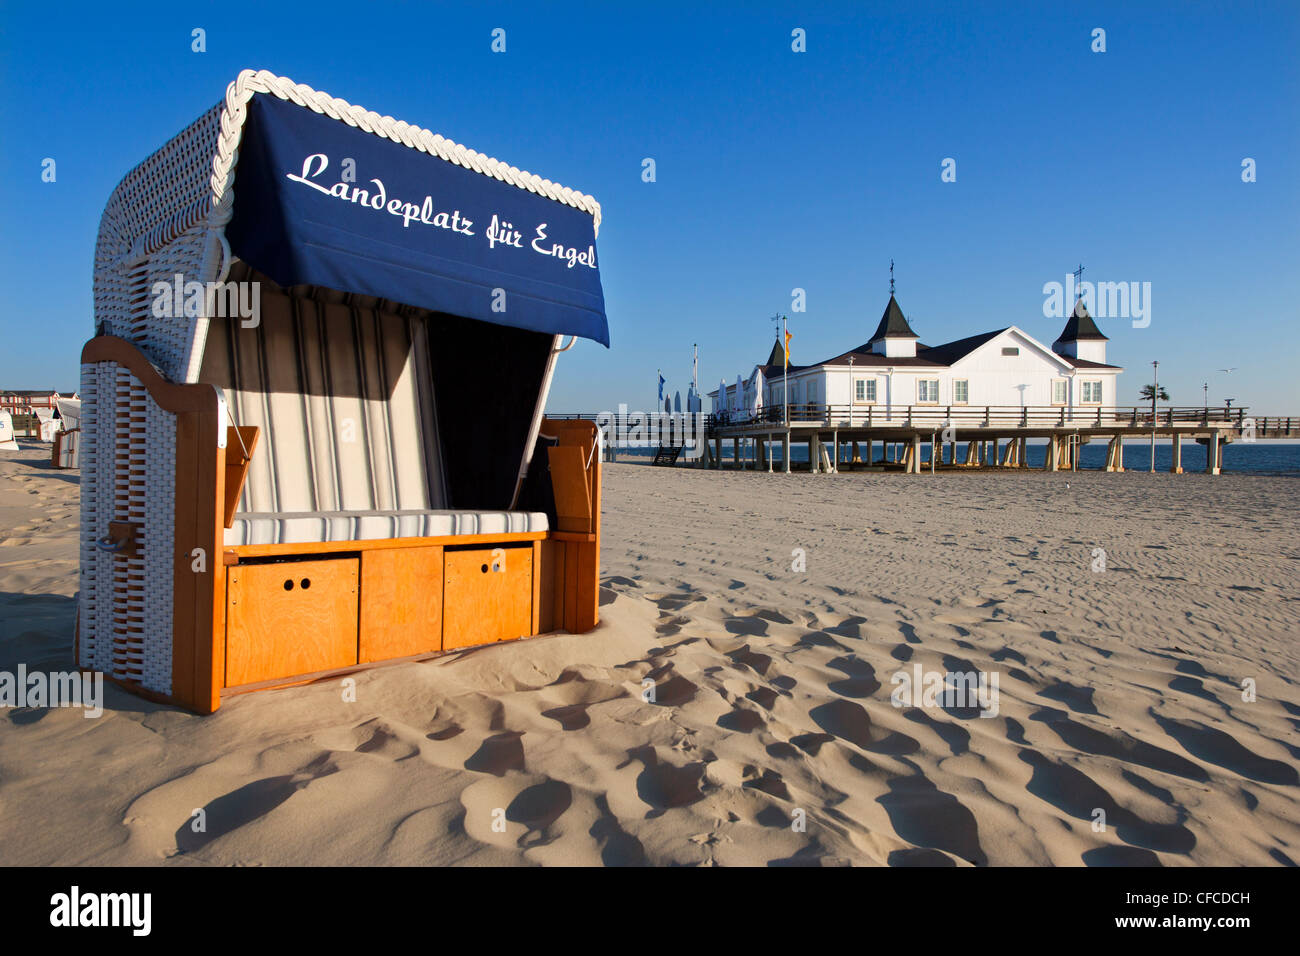 Beach chair and pier, Ahlbeck seaside resort, Usedom island, Baltic Sea, Mecklenburg-West Pomerania, Germany - Stock Image